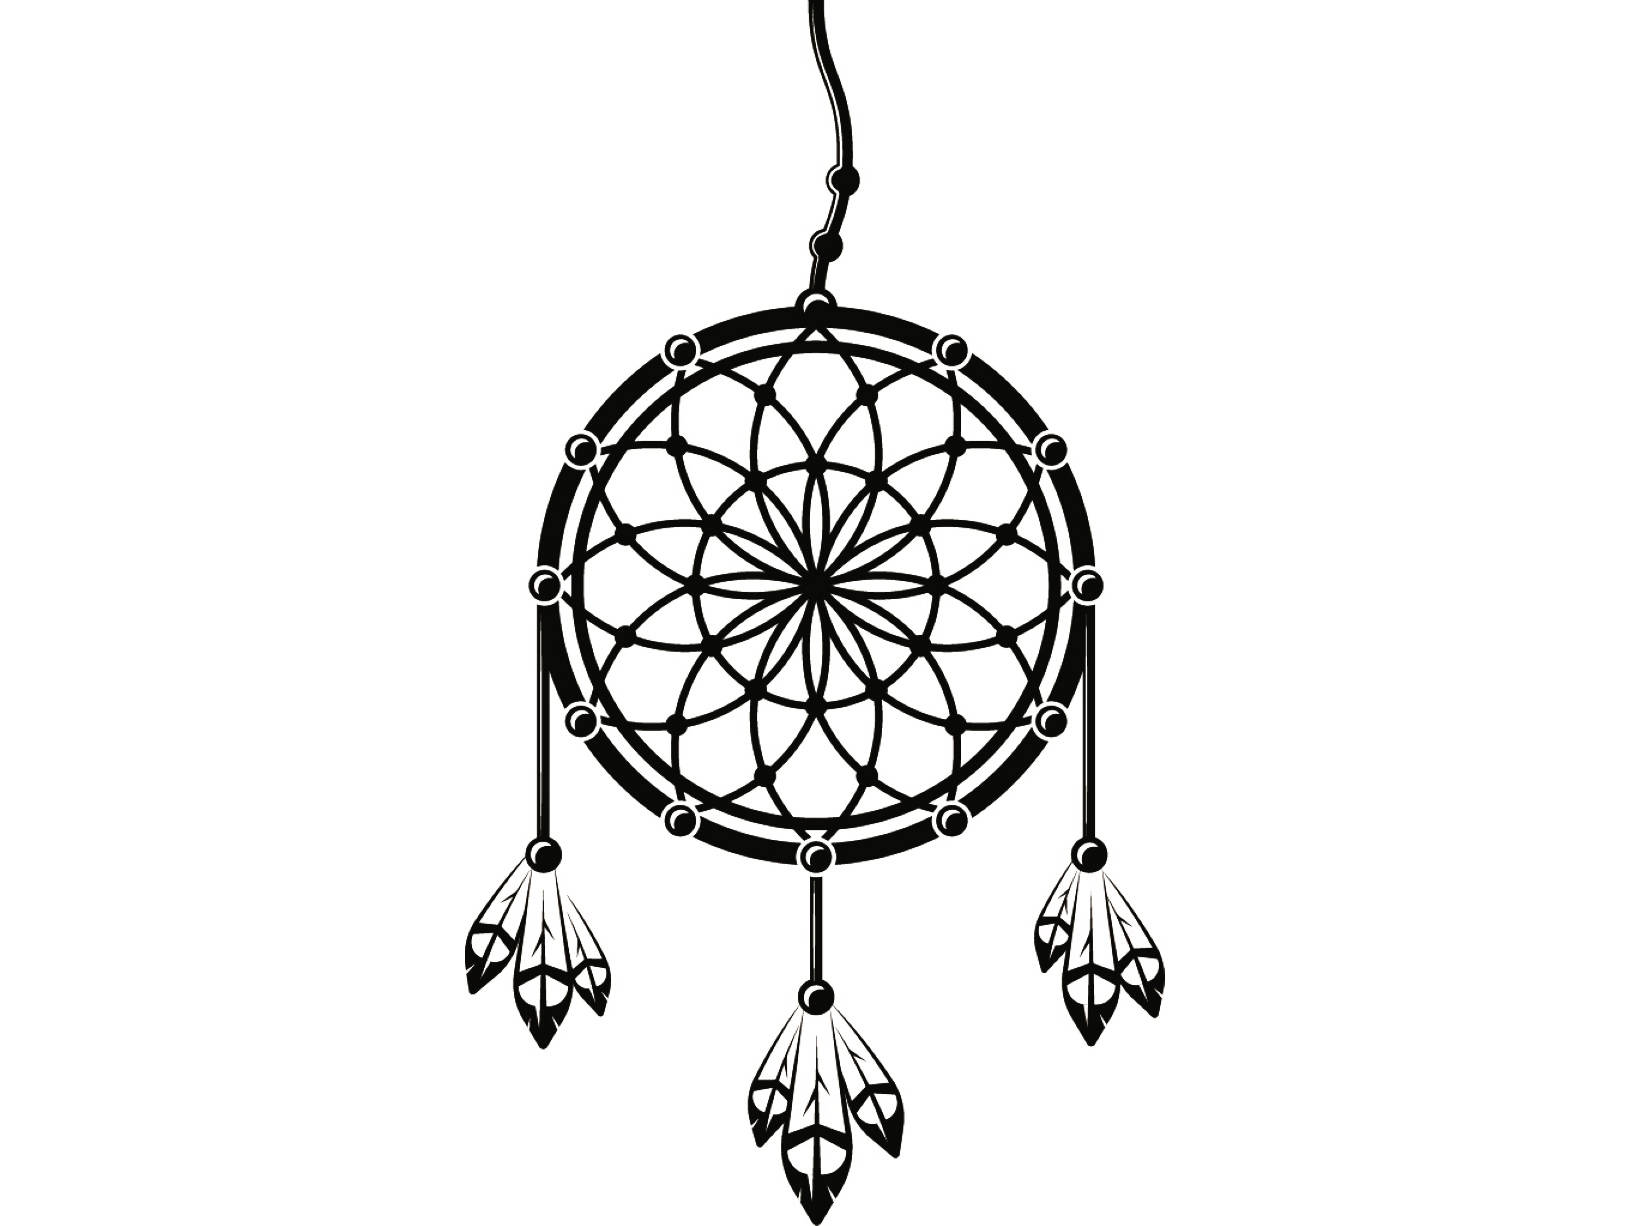 1631x1226 Dreamcatcher 2 Native American Indian Dream Catcher